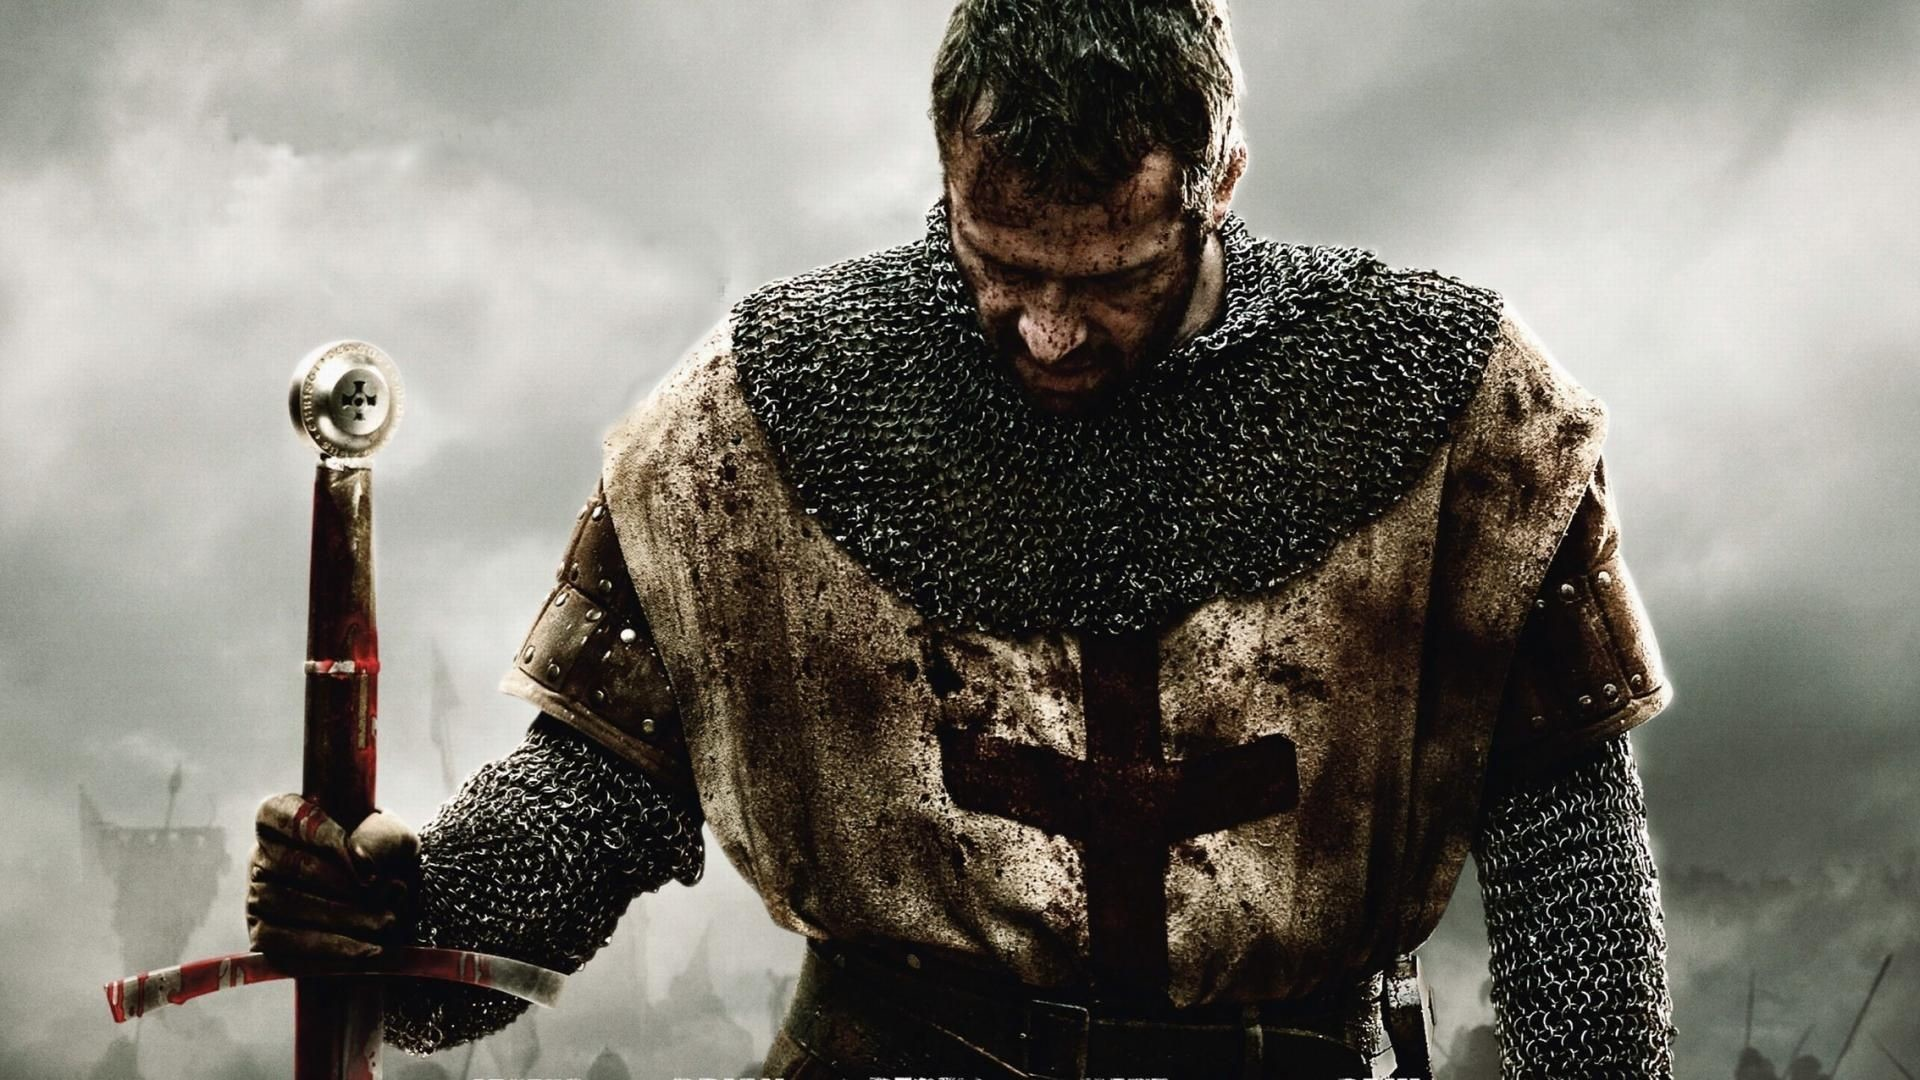 Res: 1920x1080, Medieval Knights Wallpaper | Ironclad Knight Medieval Sword Armor Blood  James Purefoy wallpaper .